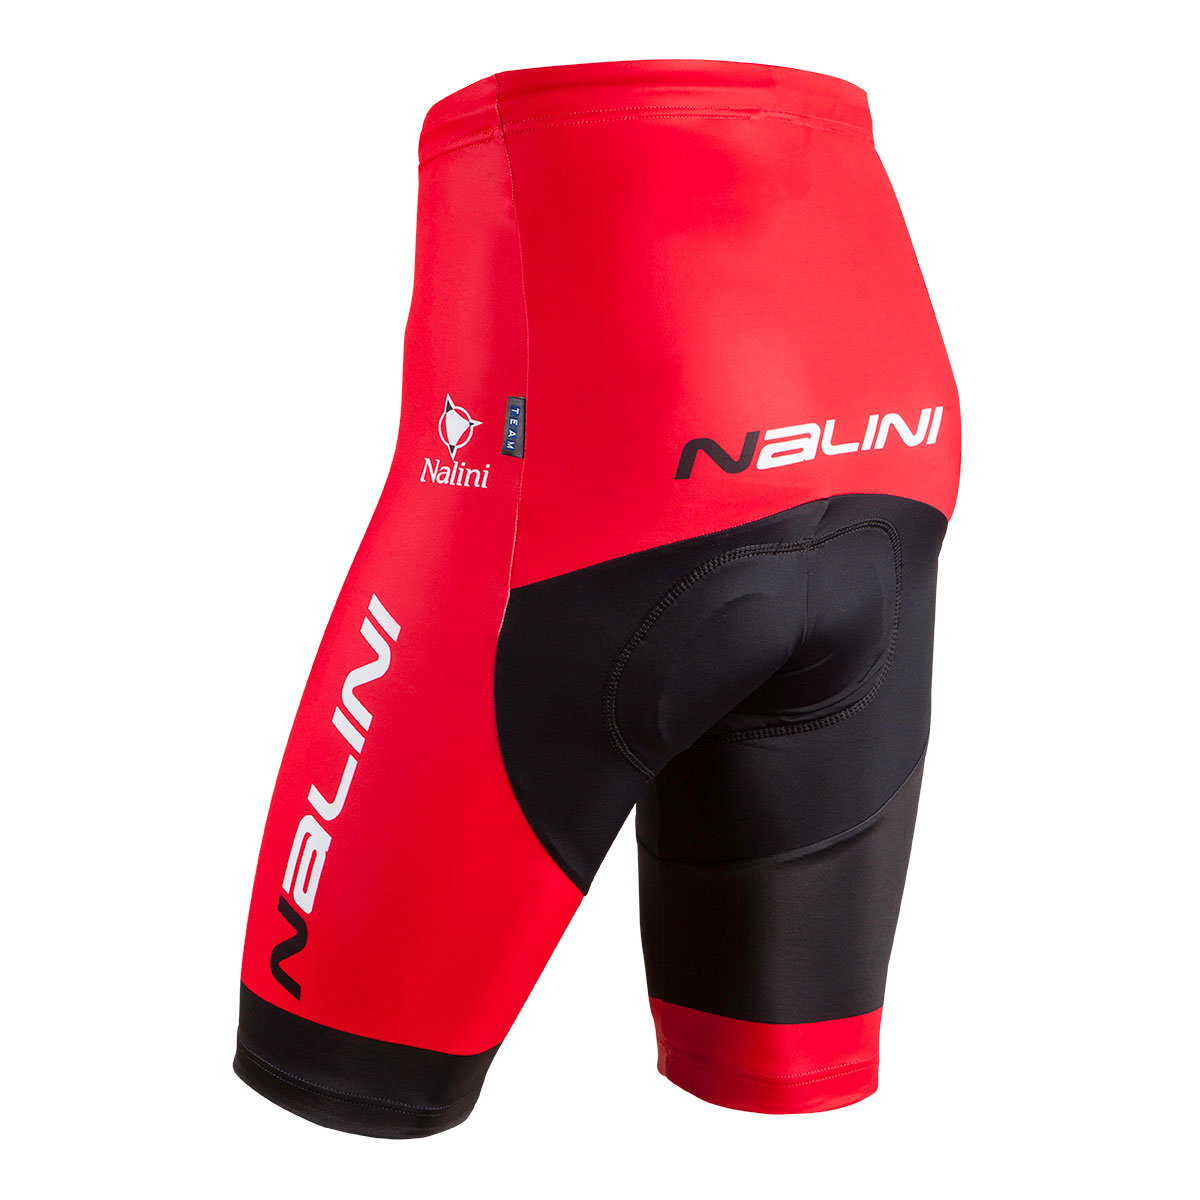 Nalini Bike Wear  Albabici Cycling Products